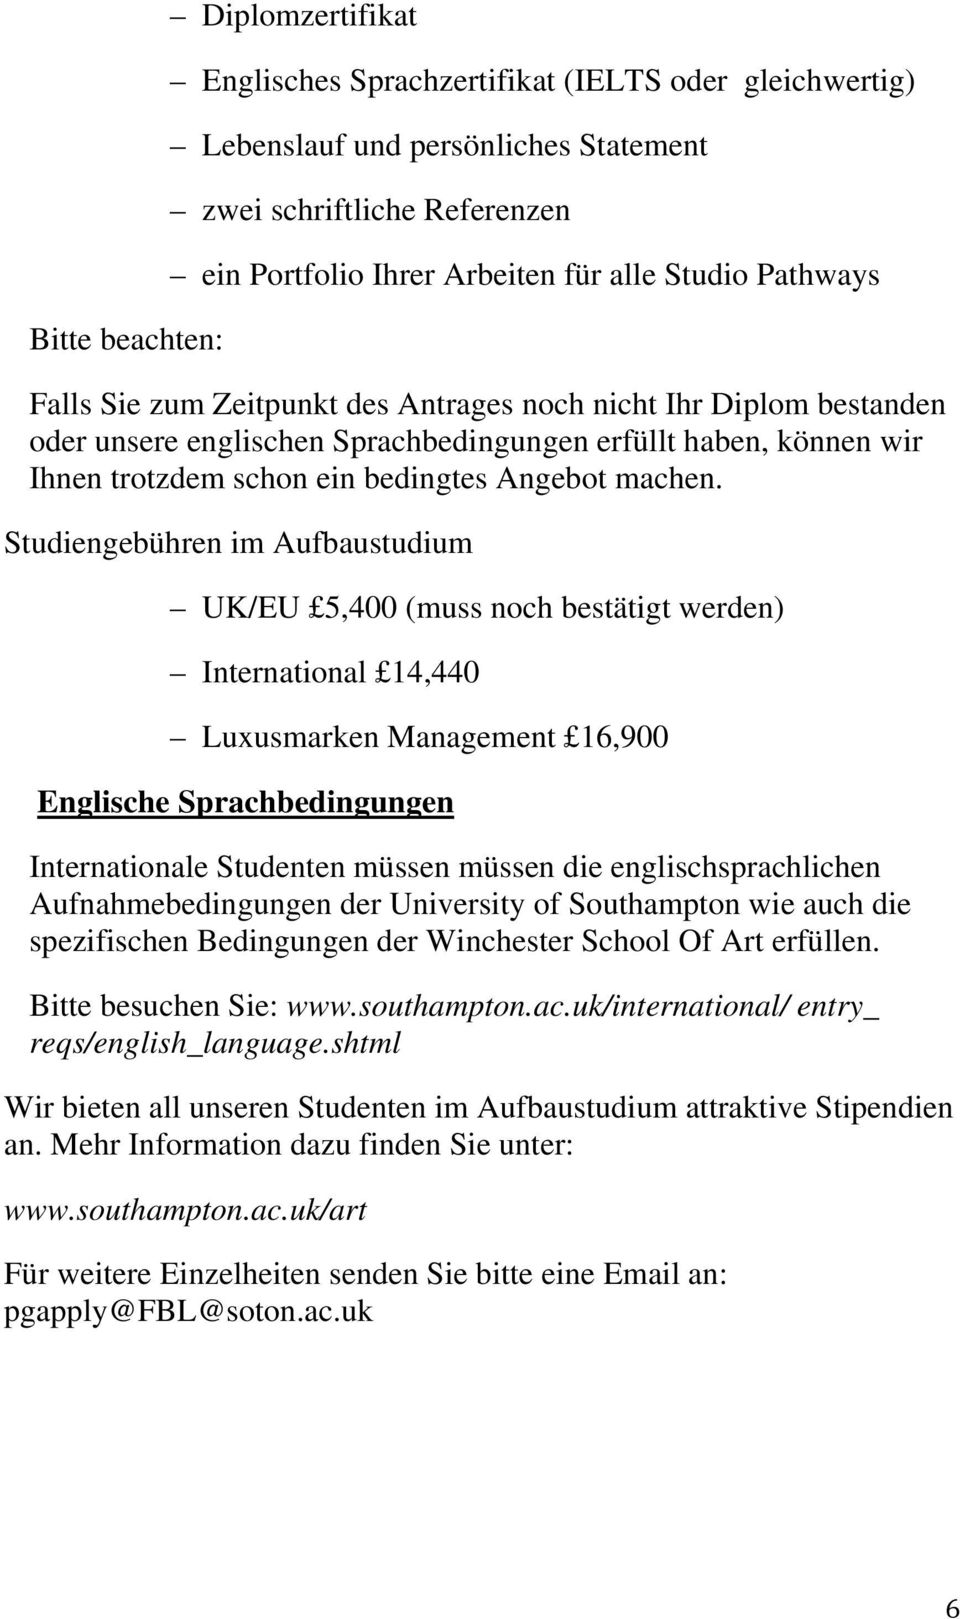 Studiengebühren im Aufbaustudium UK/EU 5,400 (muss noch bestätigt werden) International 14,440 Luxusmarken Management 16,900 Englische Sprachbedingungen Internationale Studenten müssen müssen die